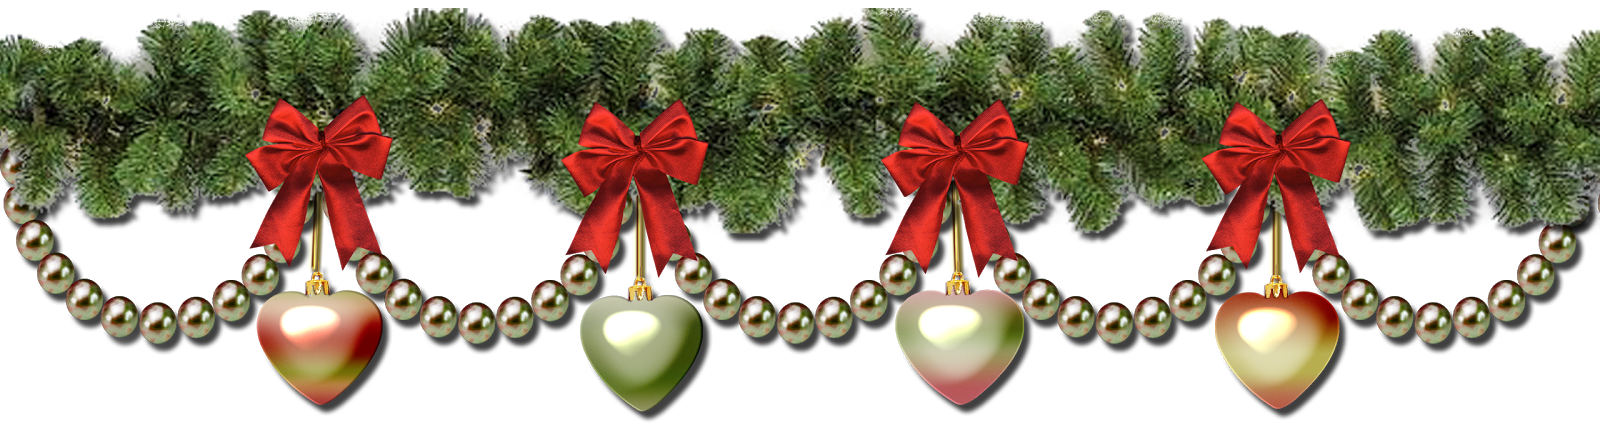 Christmas garland border transparent png.  collection of wreath